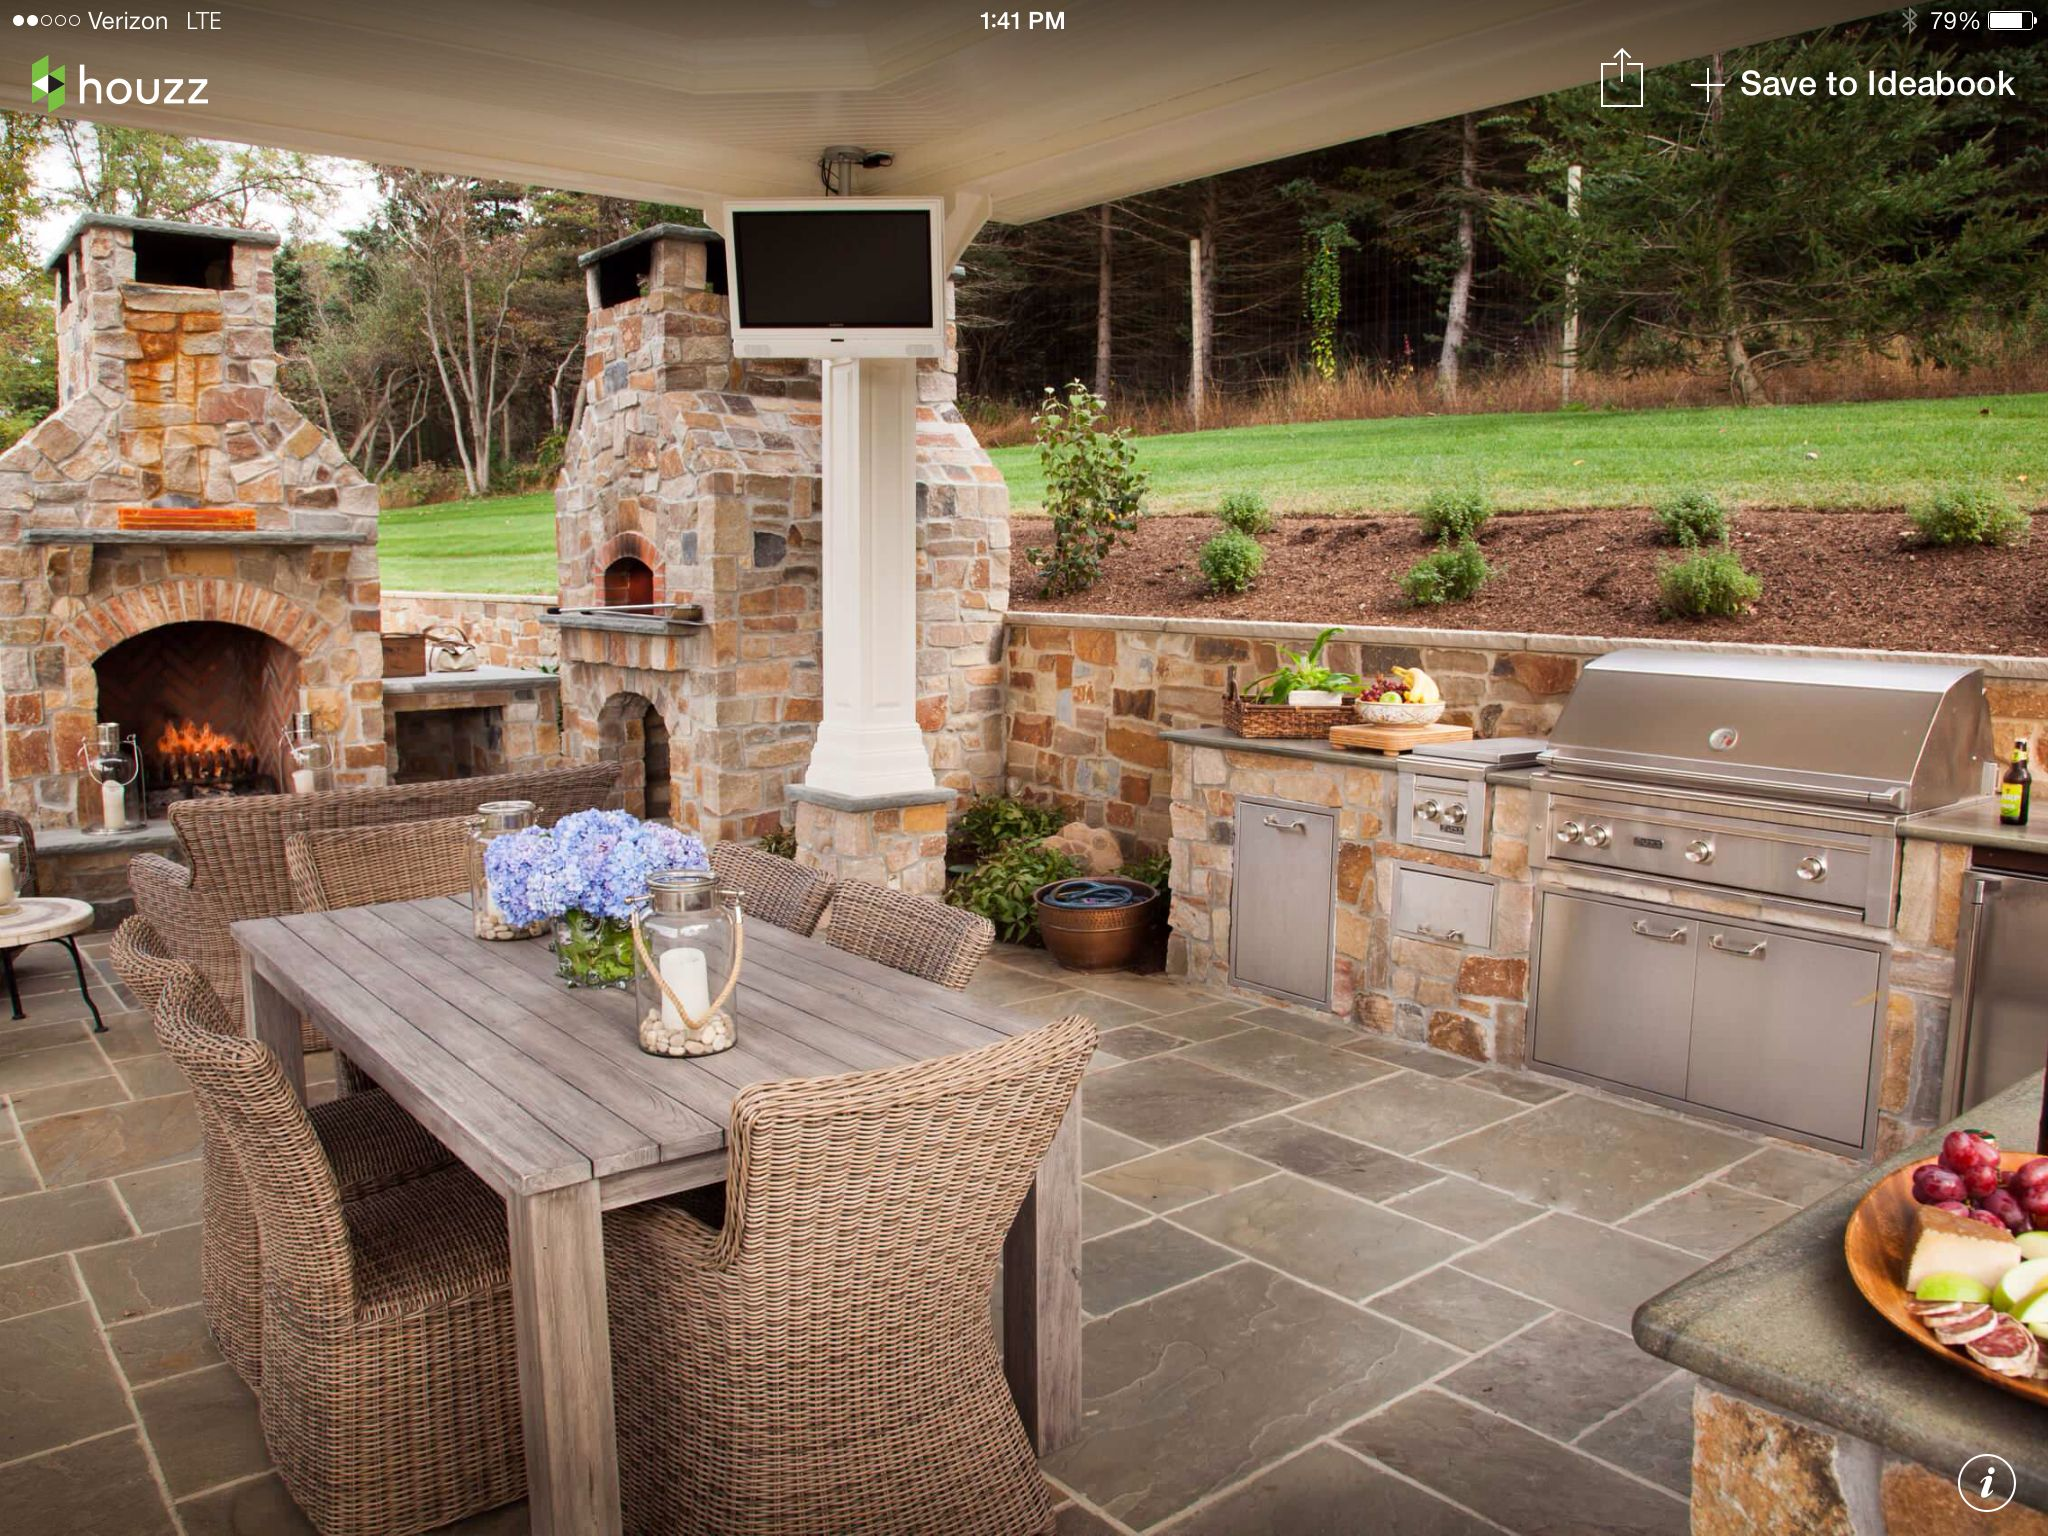 Outdoor kitchen surrounded by beautiful landscaping